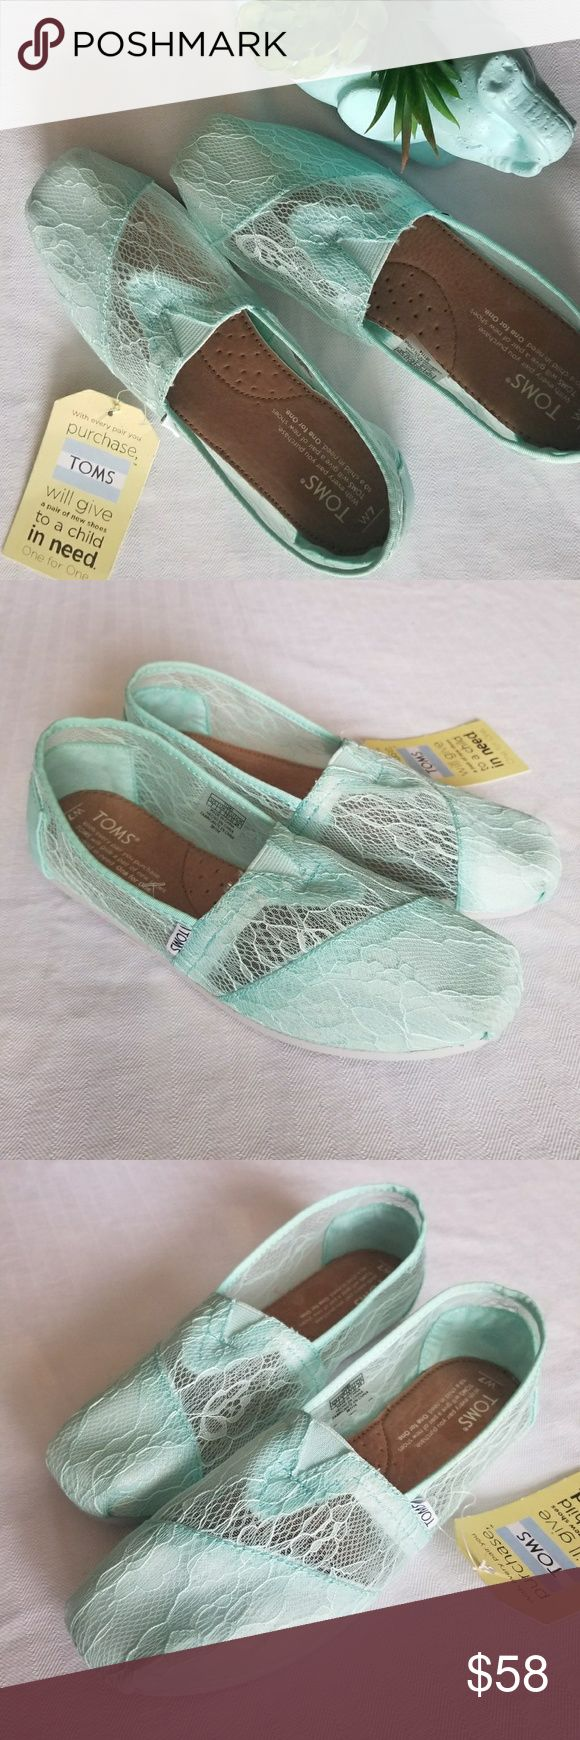 ⬇️Woman's Lace Toms Slip on Sneaker Mint New 7 New with tags Woman's CLASSIC Lace Toms Slip on Sneaker Mint New 7 The TOMS Classic espadrilles are sleek and feminine with mint green floral lace uppers. Signature TOMS branding to the side and heel along with a padded footbed to ensure everyday comfort. Slim rubber sole completes. Upper Material - Lace Sole Material - Eva Flats and Loafers Toms Shoes Espadrilles